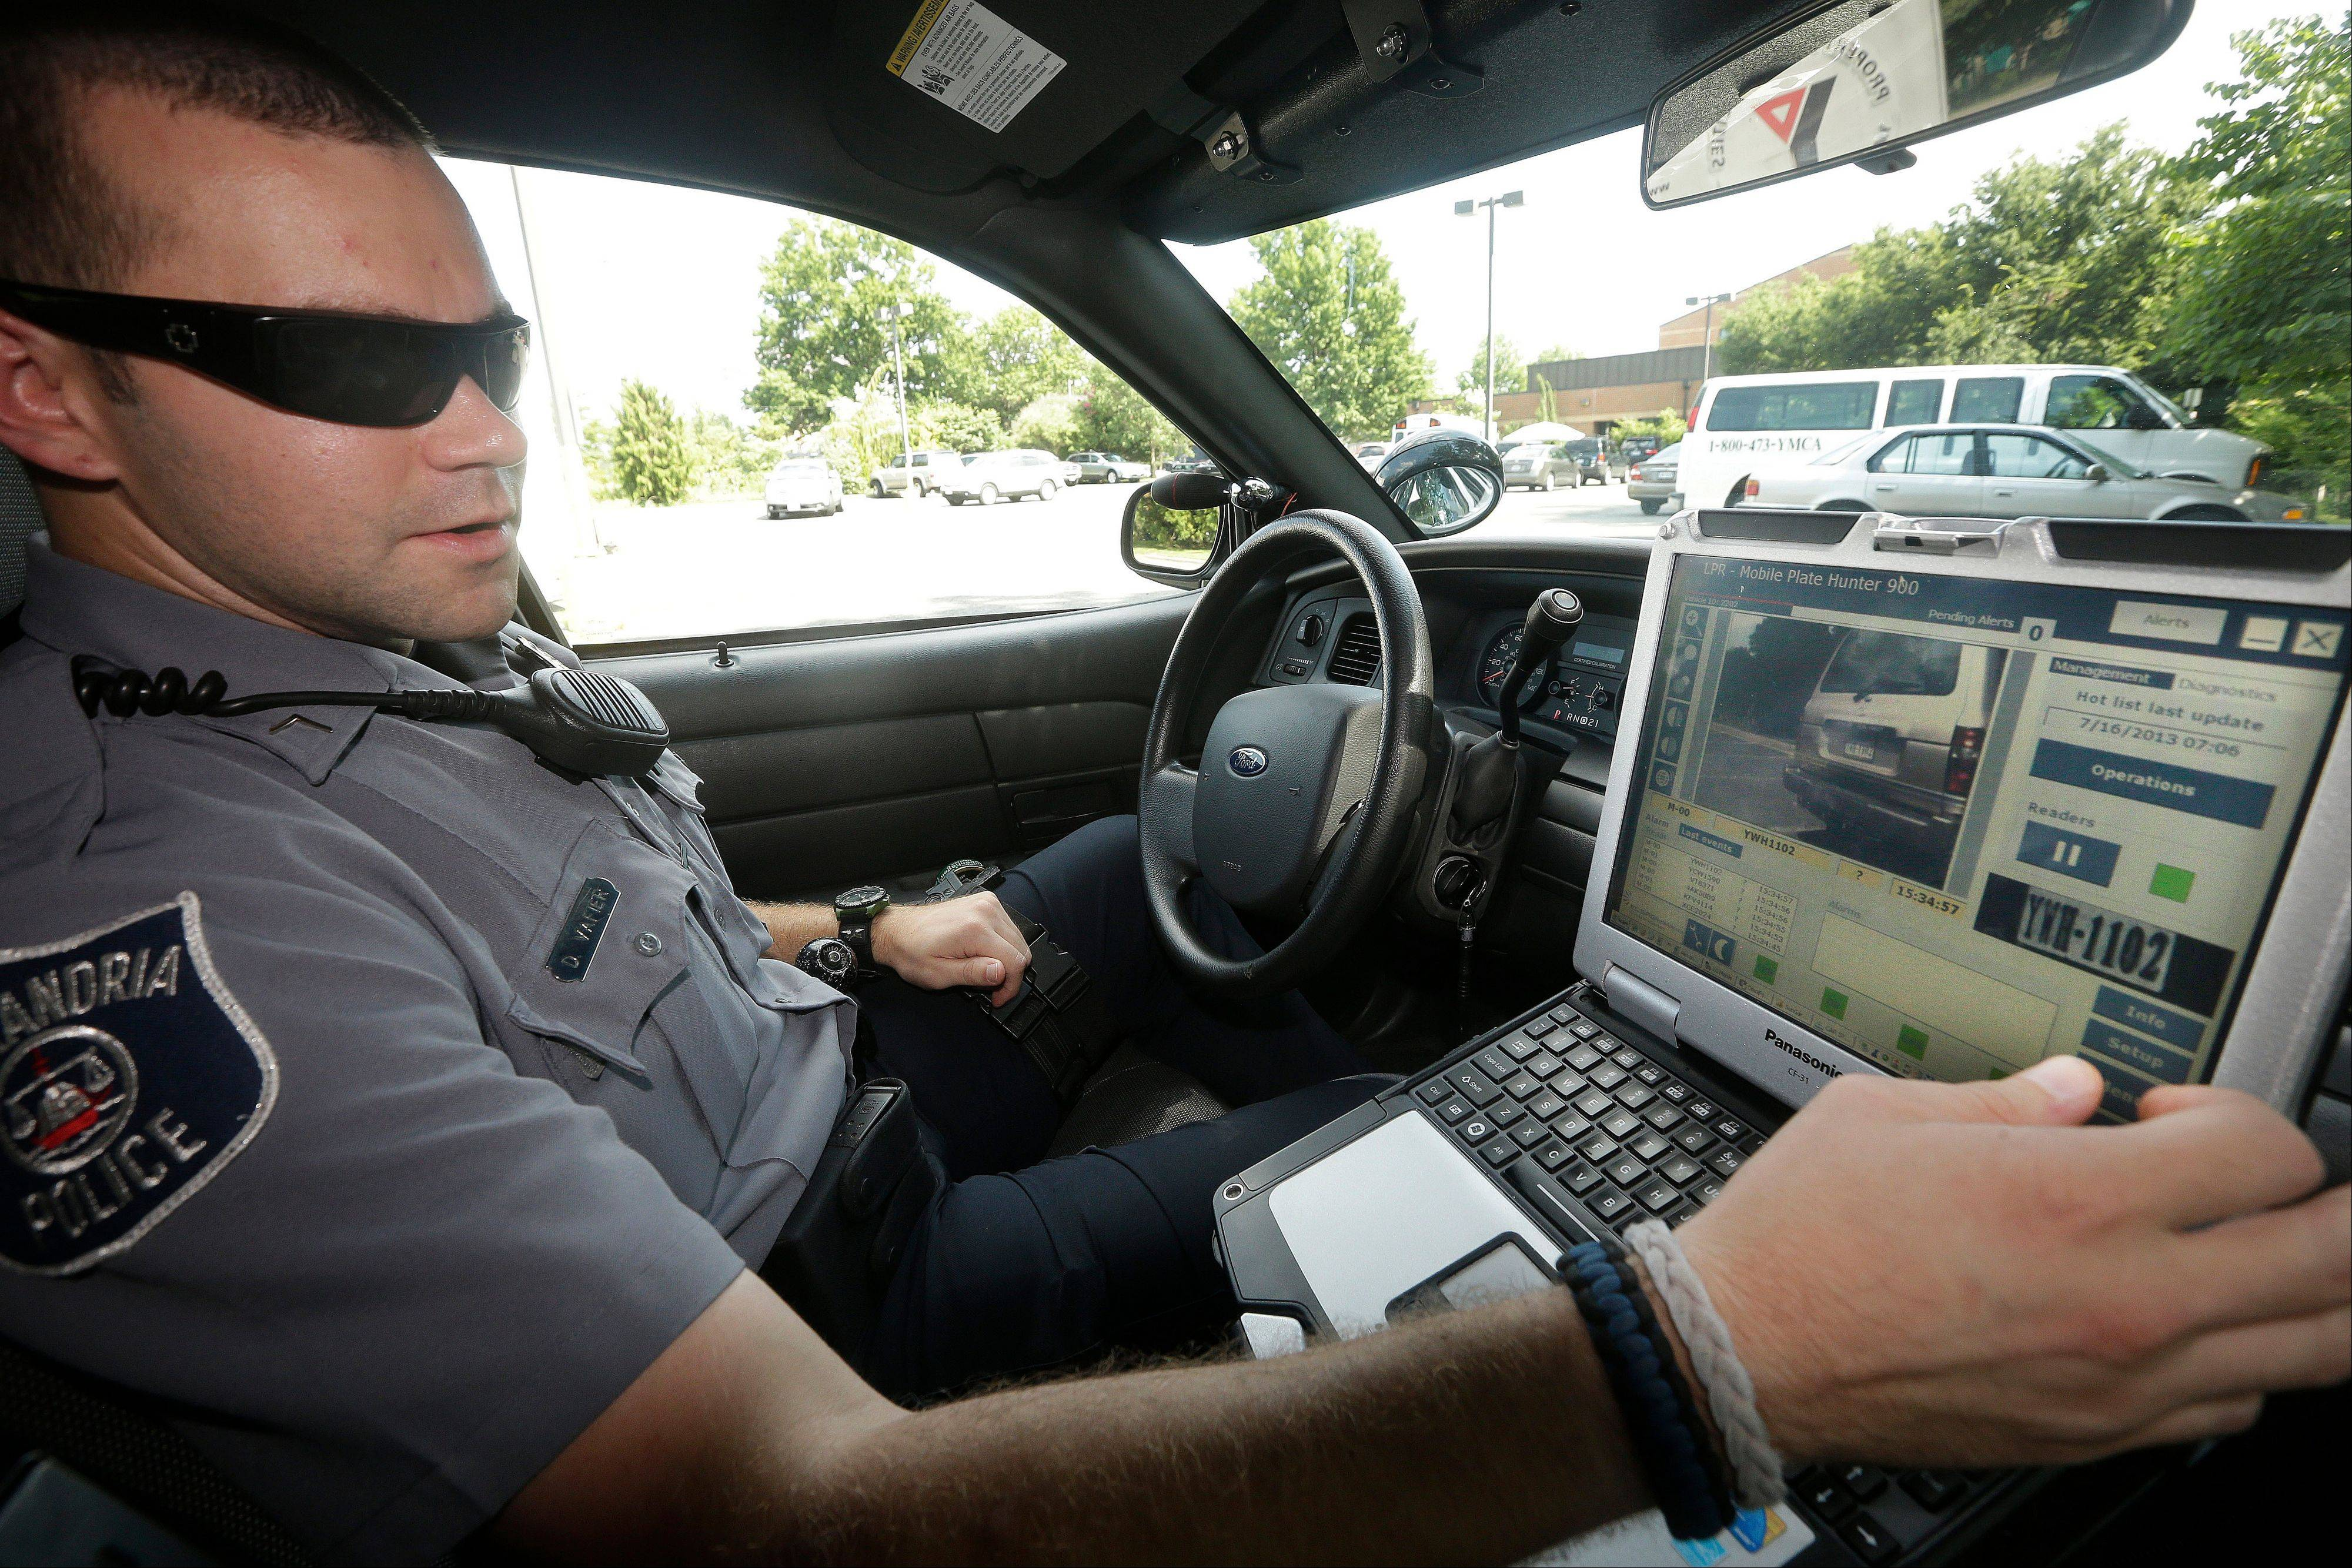 Office Dennis Vafier of the Alexandria Police Dept., uses a laptop in his squad car to scan vehicle license plates during his patrols, Tuesday, July 16, 2013 in Alexandria, Va. Local police departments across the country have amassed millions of digital records on the location and movements of vehicles with a license plate using automated scanners.